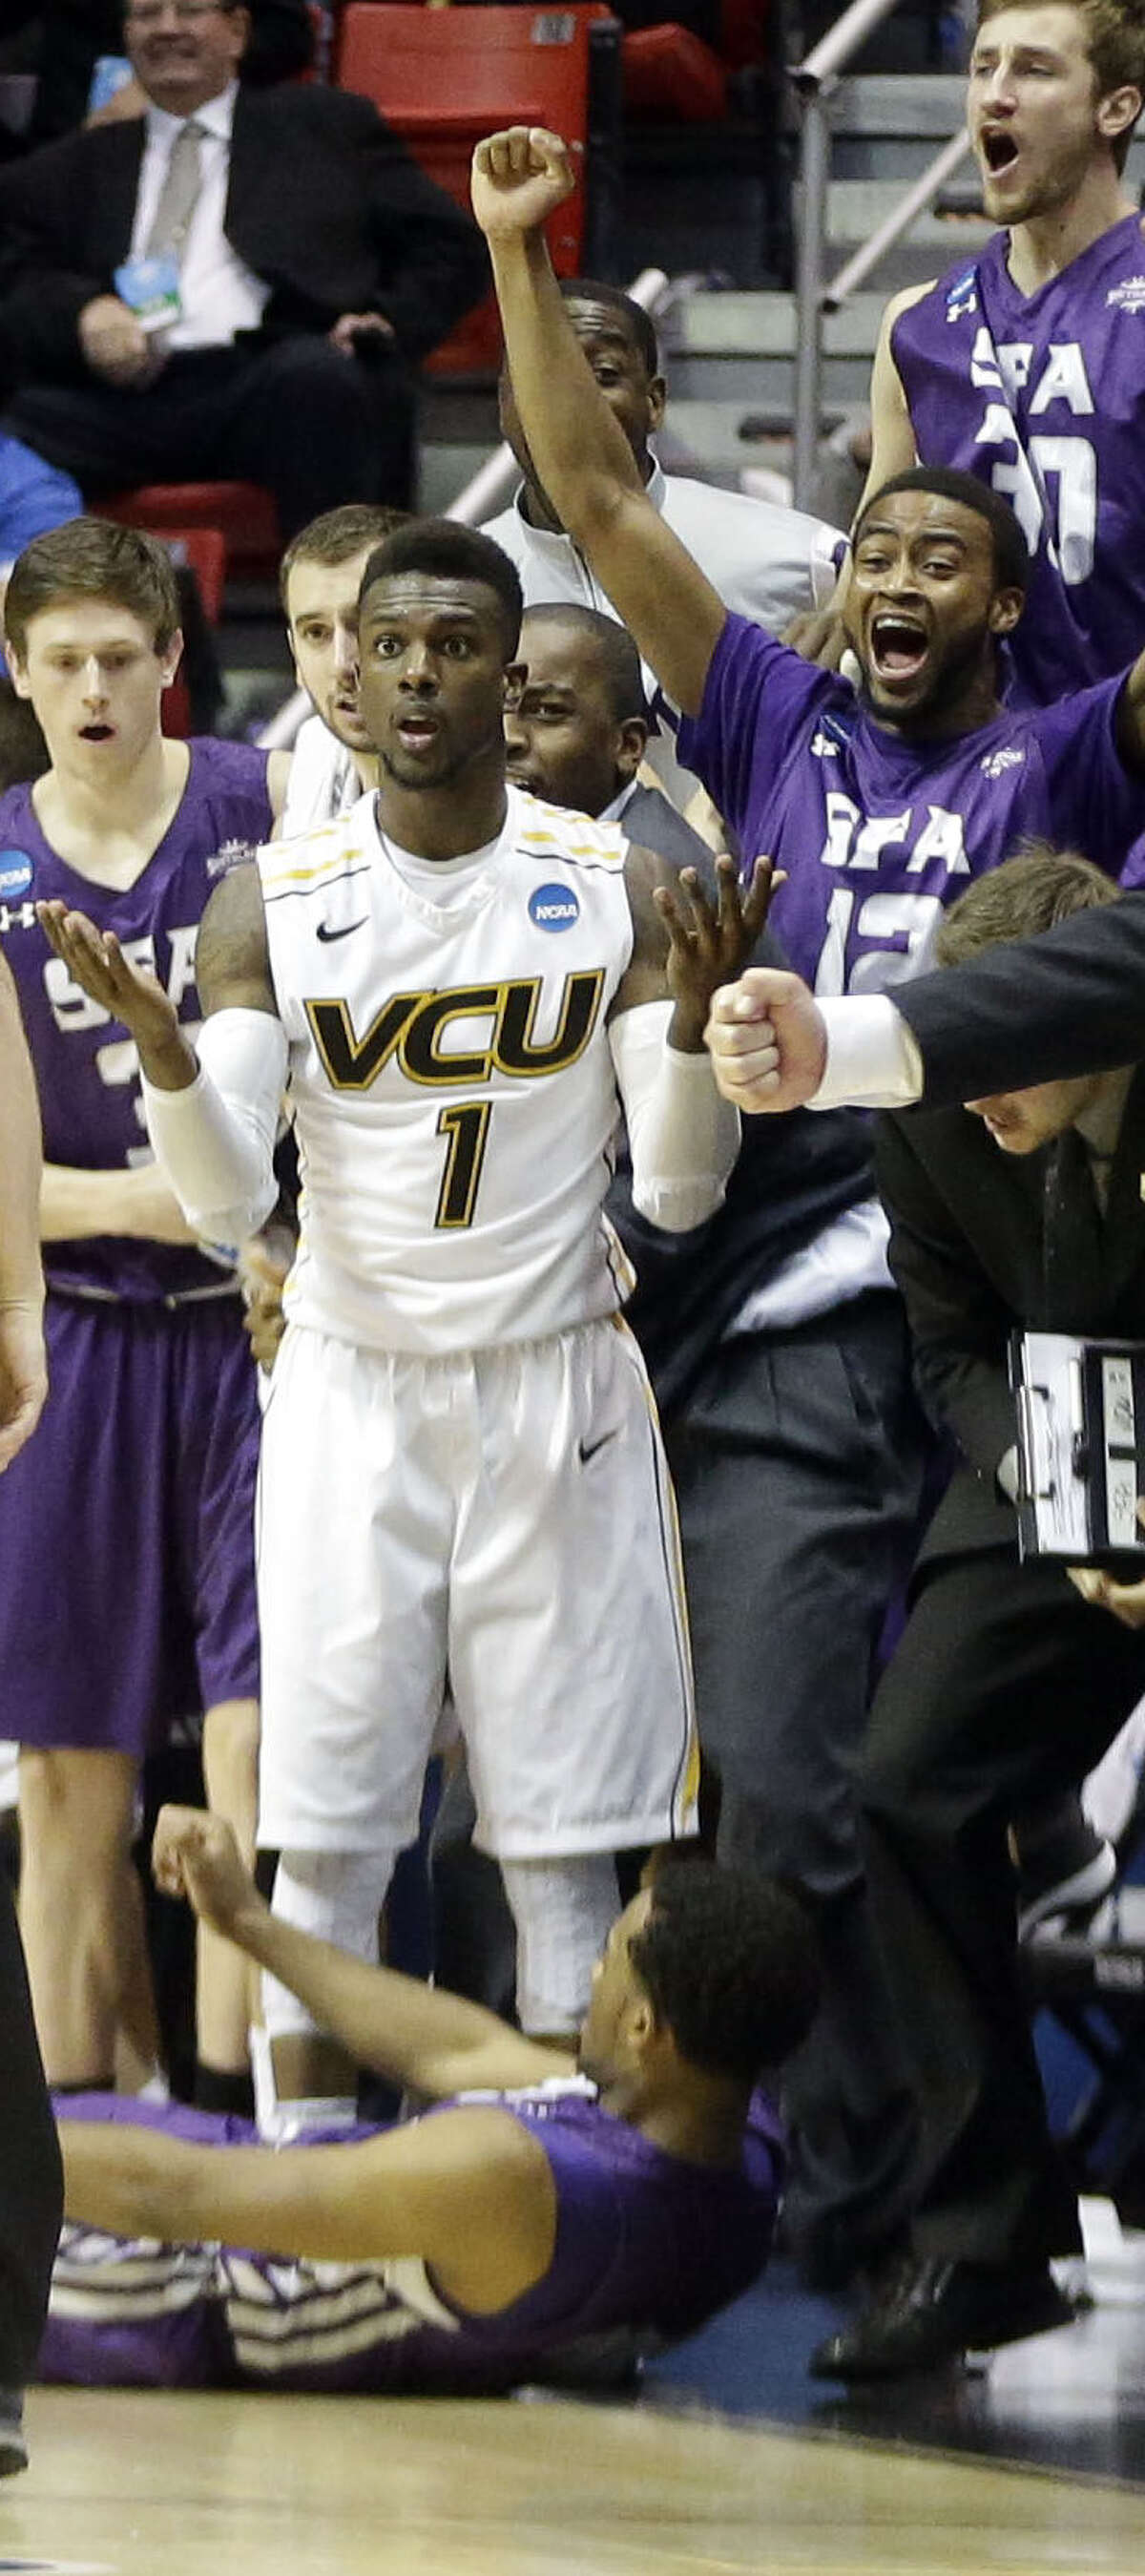 VCU's JeQuan Lewis stands in disbelief after fouling SFA's Desmond Haymon on a made 3-pointer late in regulation. The free throw forced OT.